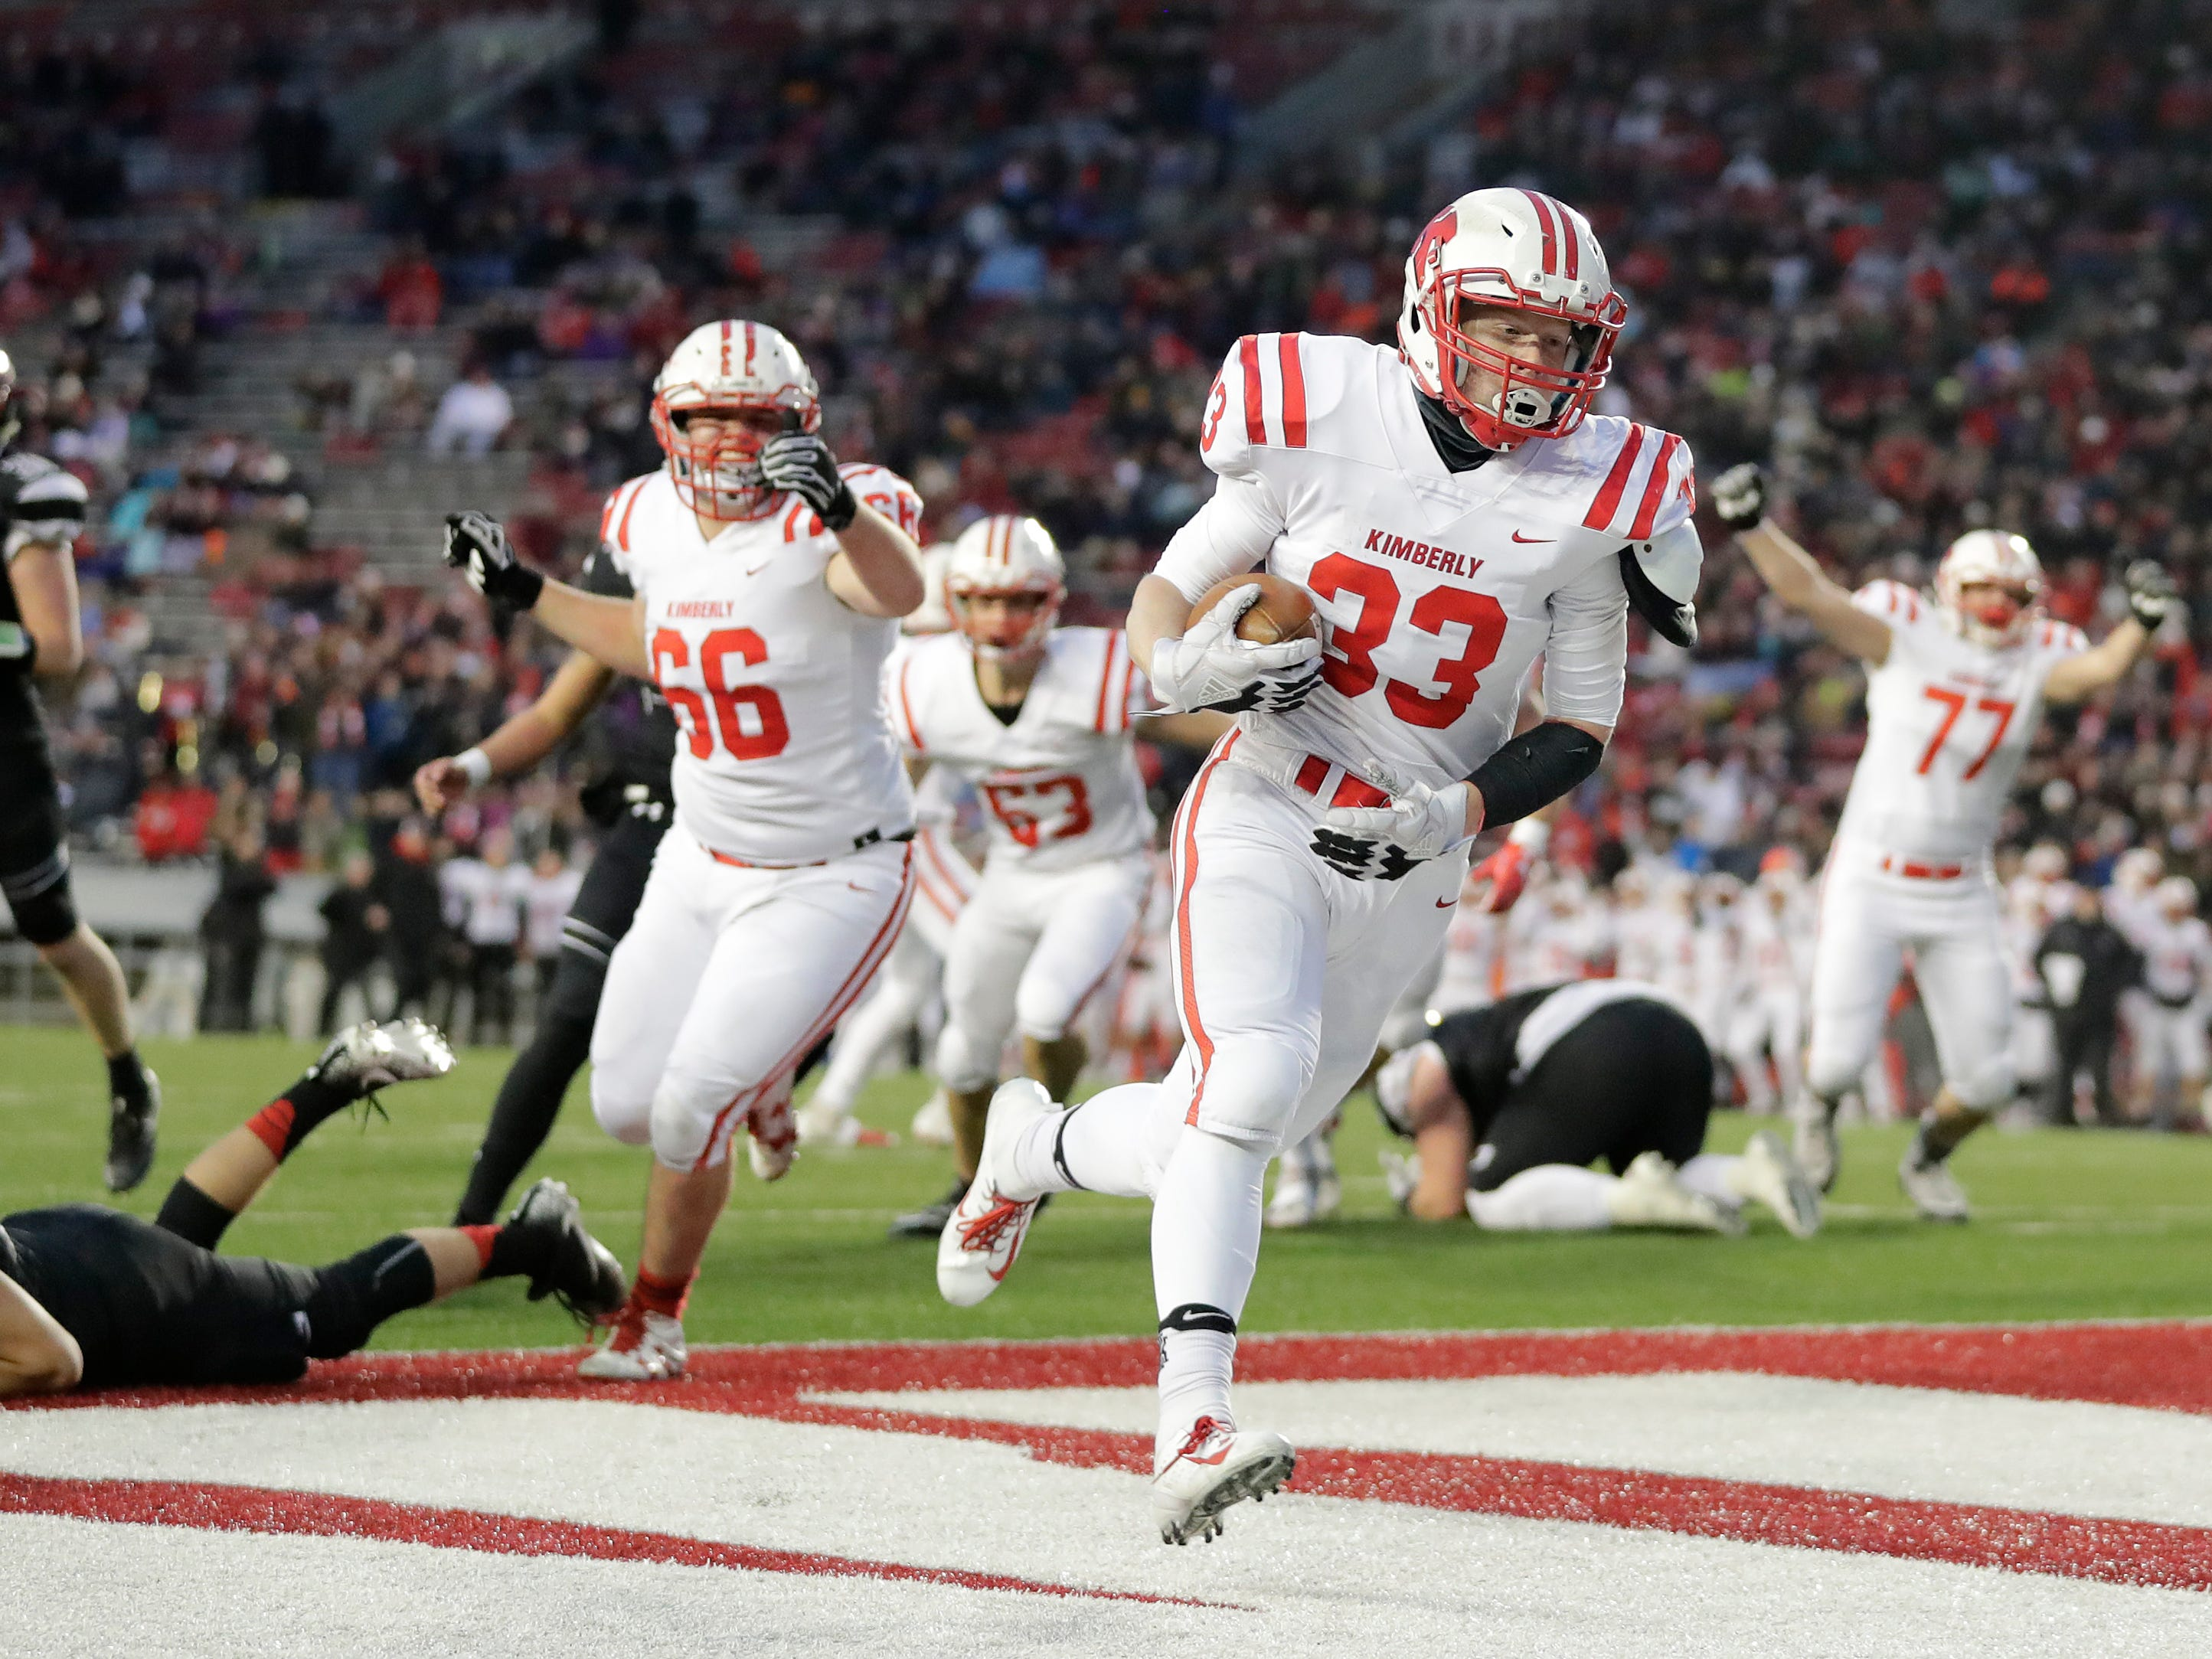 Kimberly's Caleb Frazer (33) rushes for a touchdown against Muskego in the WIAA Division 1 championship game at Camp Randall Stadium on Friday, November 16, 2018 in Madison, Wis.